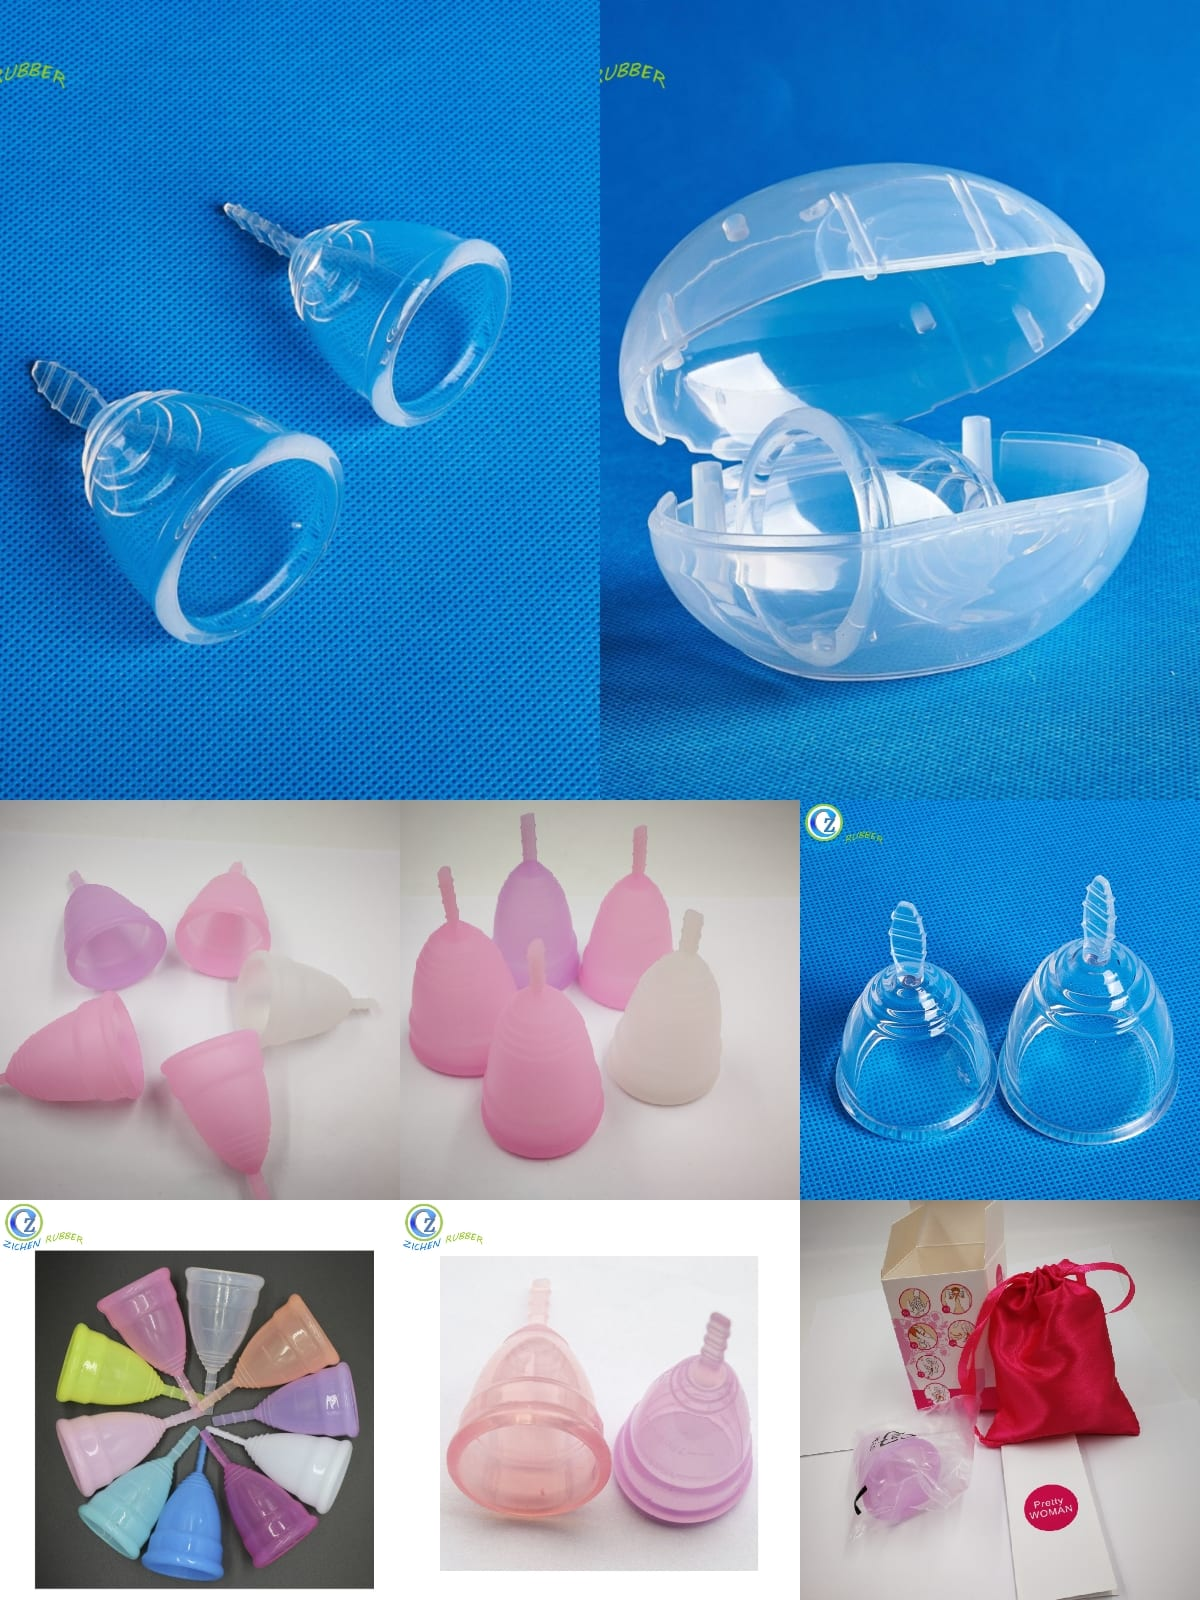 Silicone parts for health care products 1